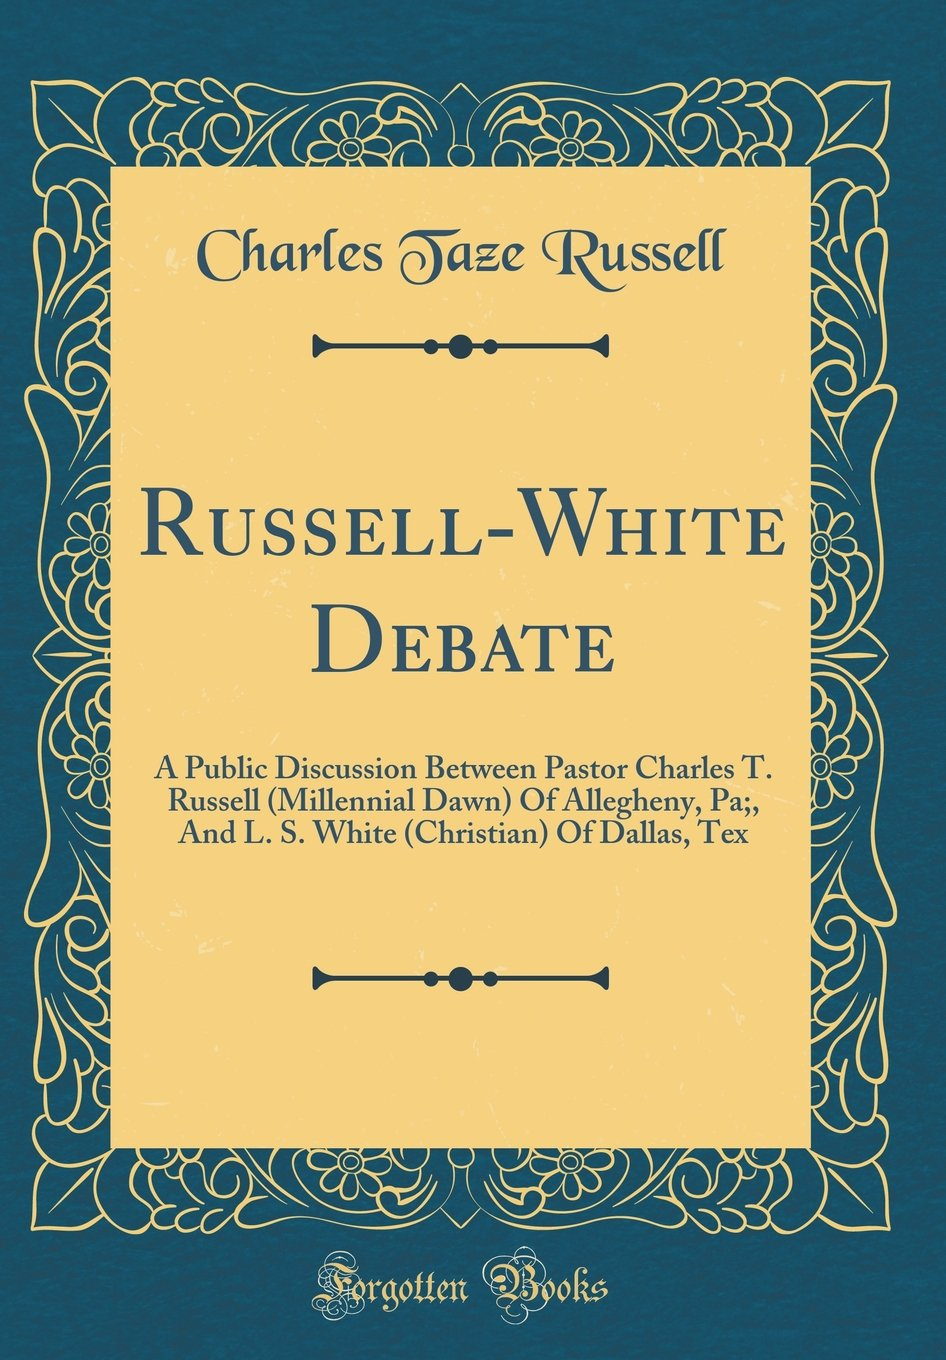 Russell-White Debate: A Public Discussion Between Pastor Charles T. Russell (Millennial Dawn) of Allegheny, Pa;, and L. S. White (Christian) of Dallas, Tex (Classic Reprint) ebook